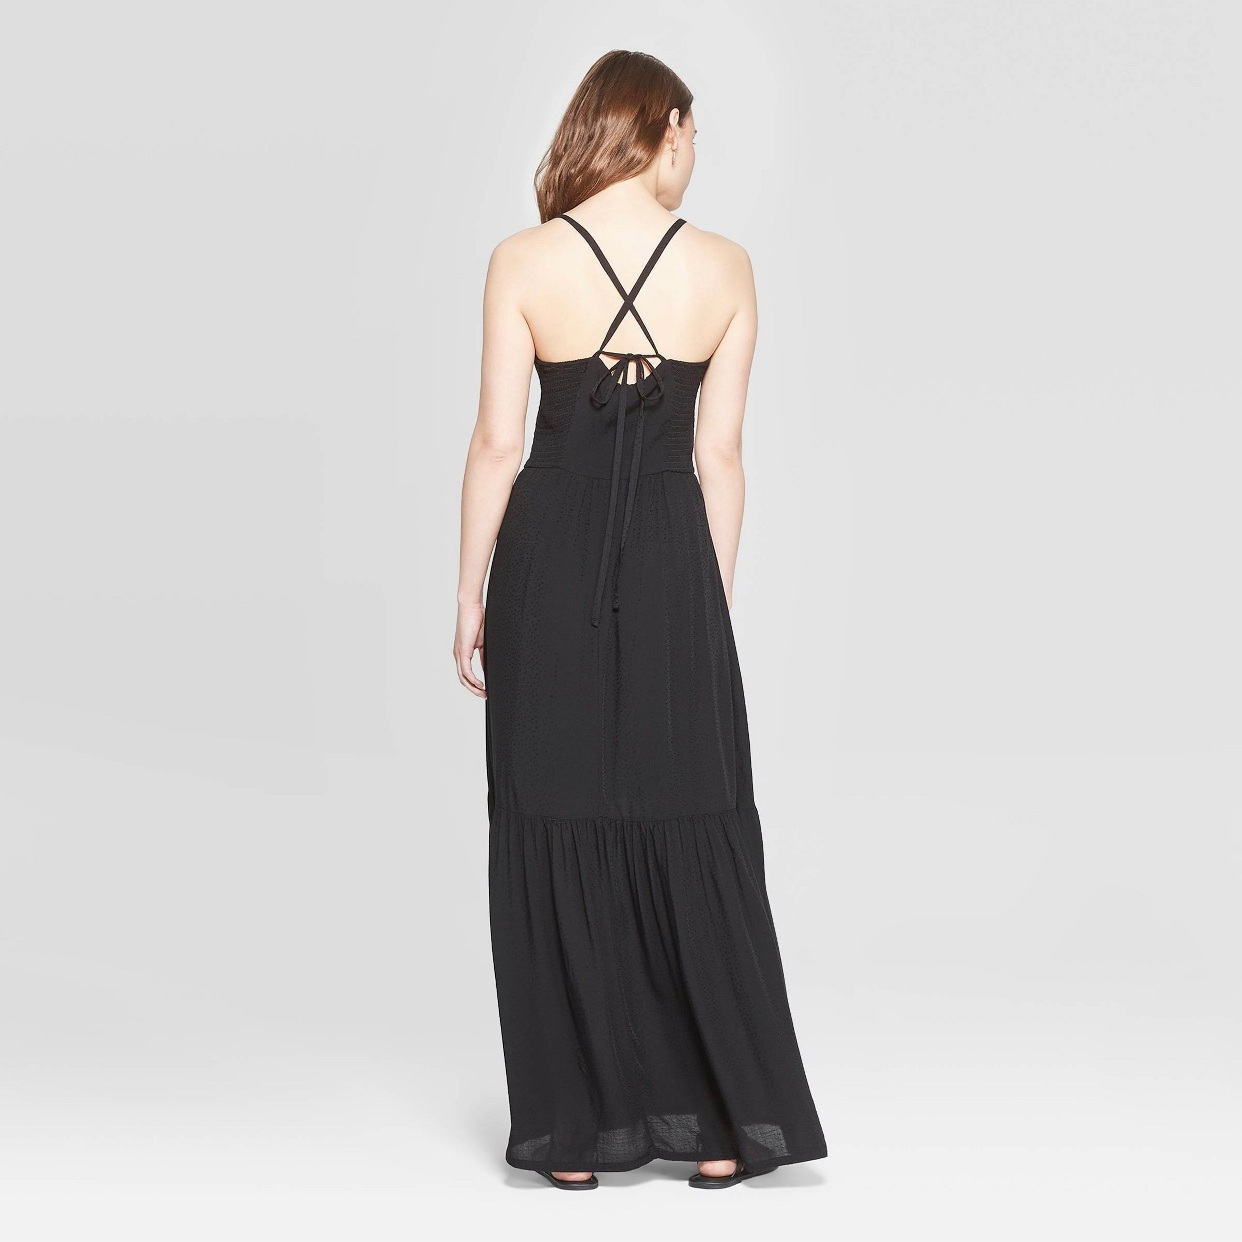 - You can always count on my for a black maxi dress on FF! Love the straps on this one!Find it here.